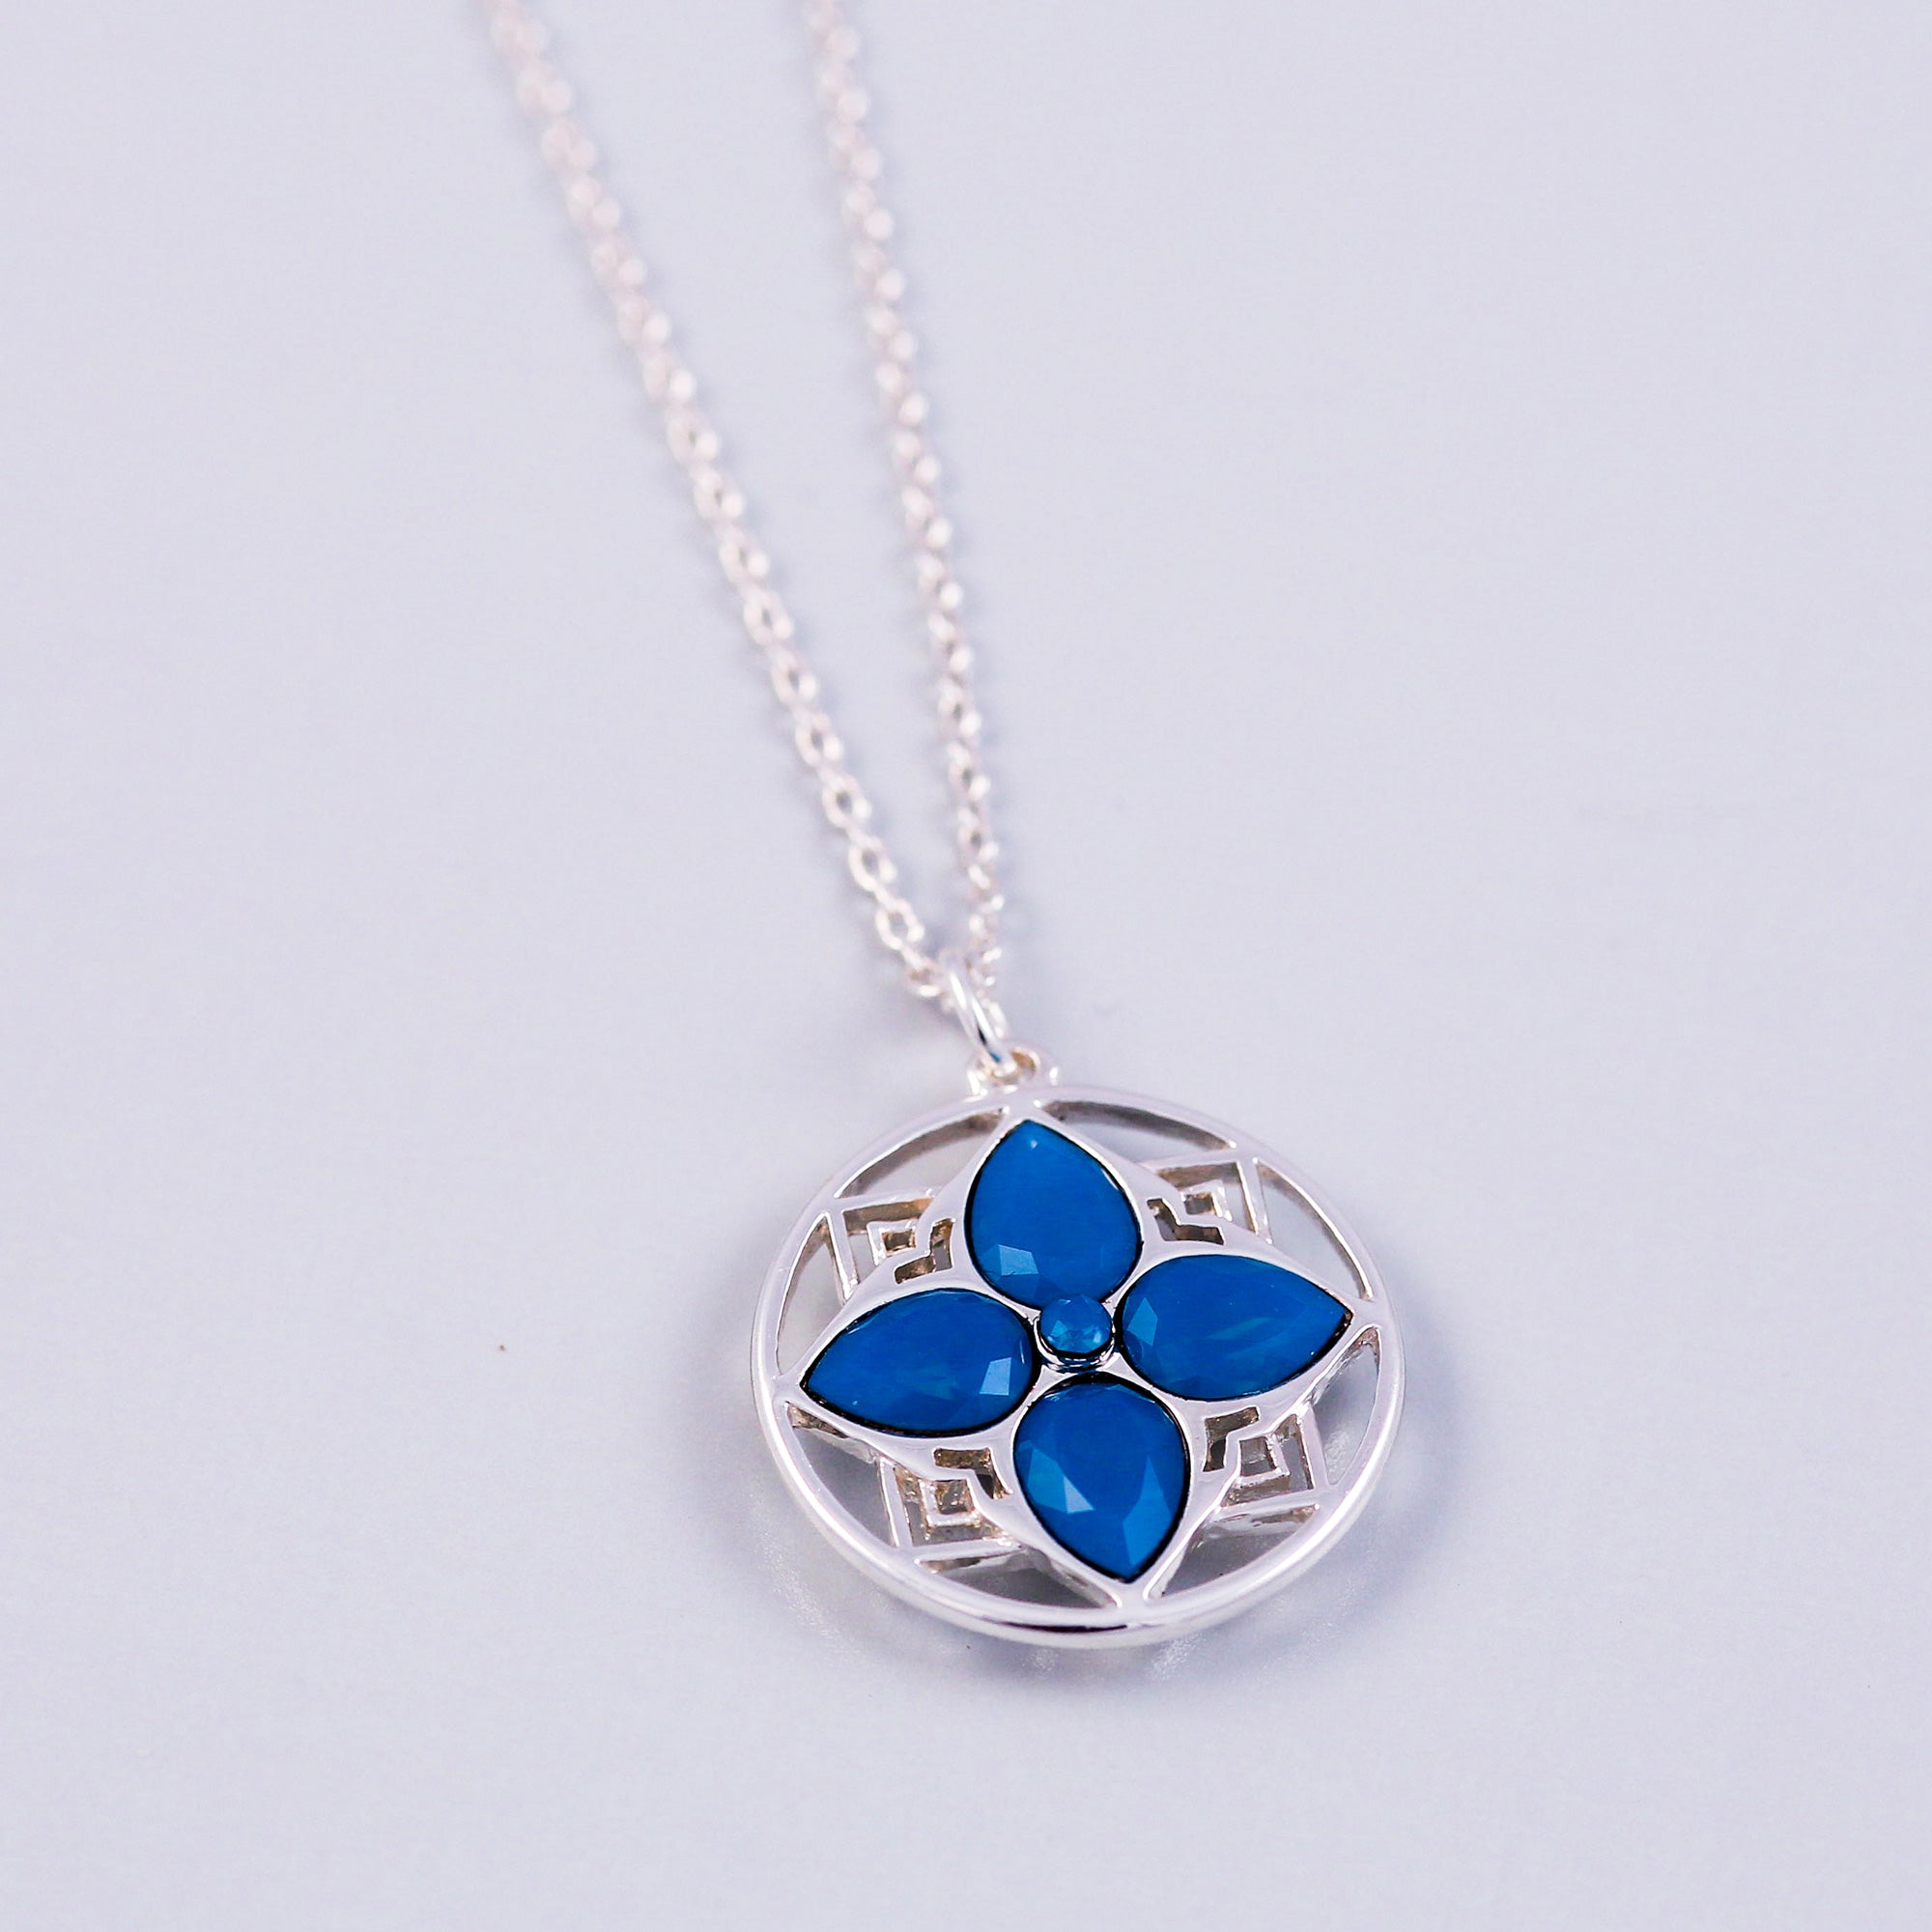 Arabesque Four Petal Flower Necklace | Silver & Caribbean Blue Opal